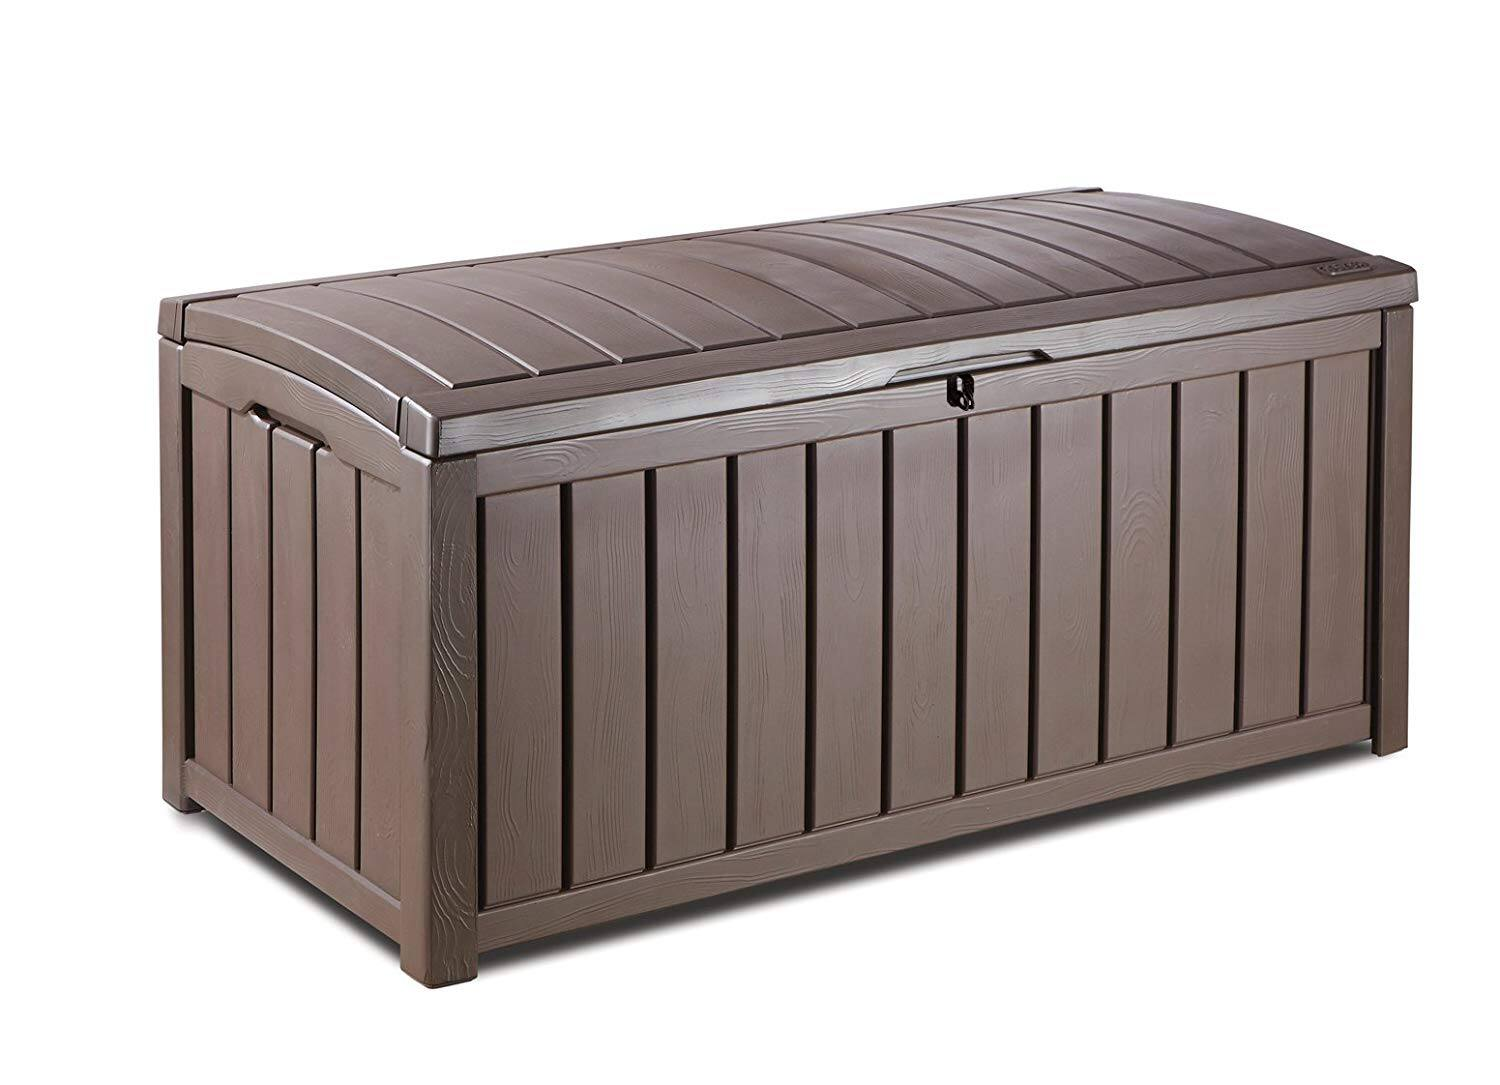 Amazon.com has 101 Gal. Keter Glenwood Plastic Outdoor Storage Box (Brown) for $69.74. Shipping is free.